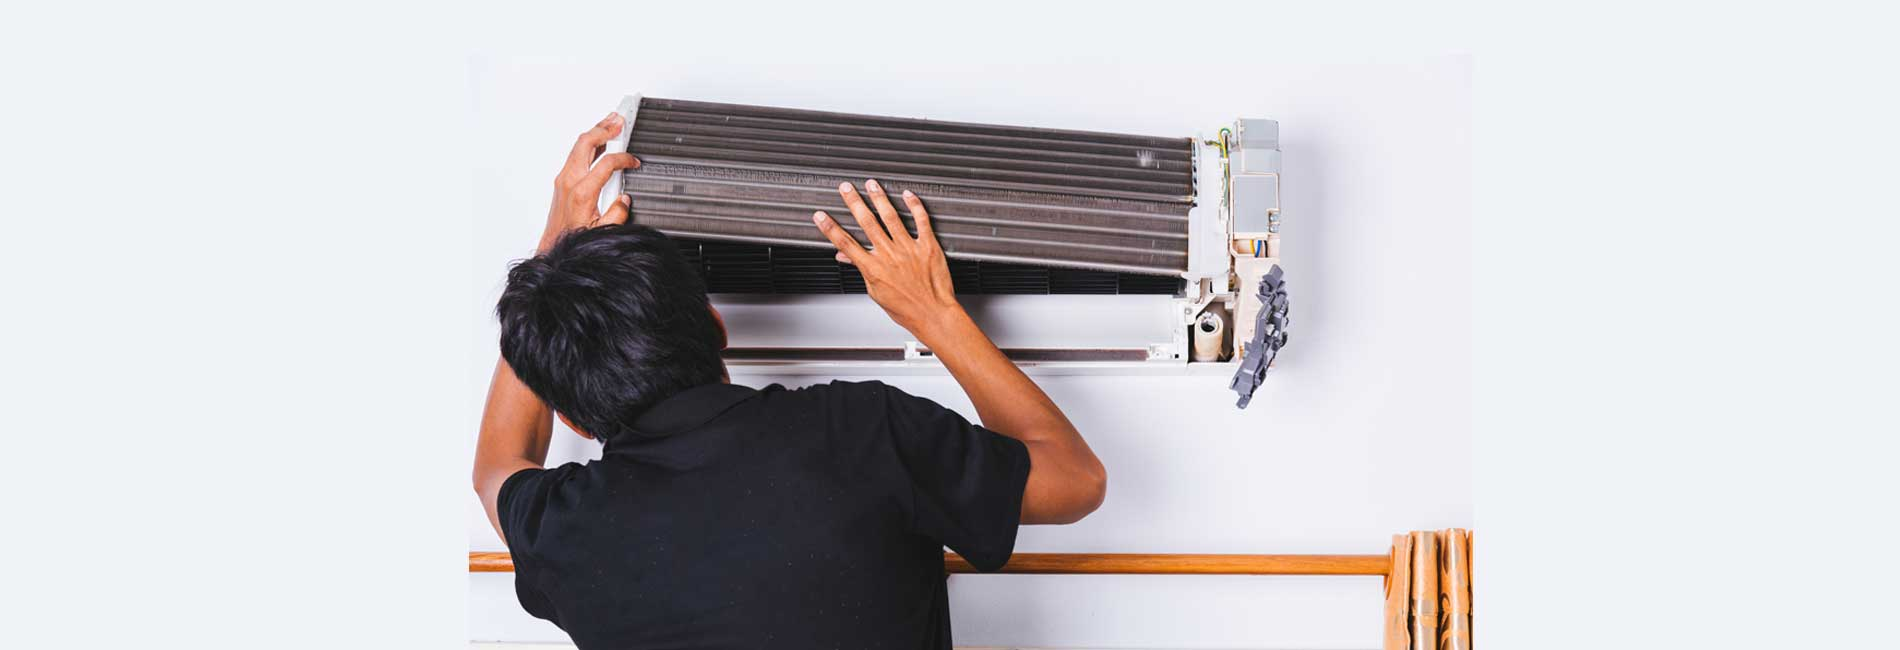 Bluestar Air Condition Service in Avadi